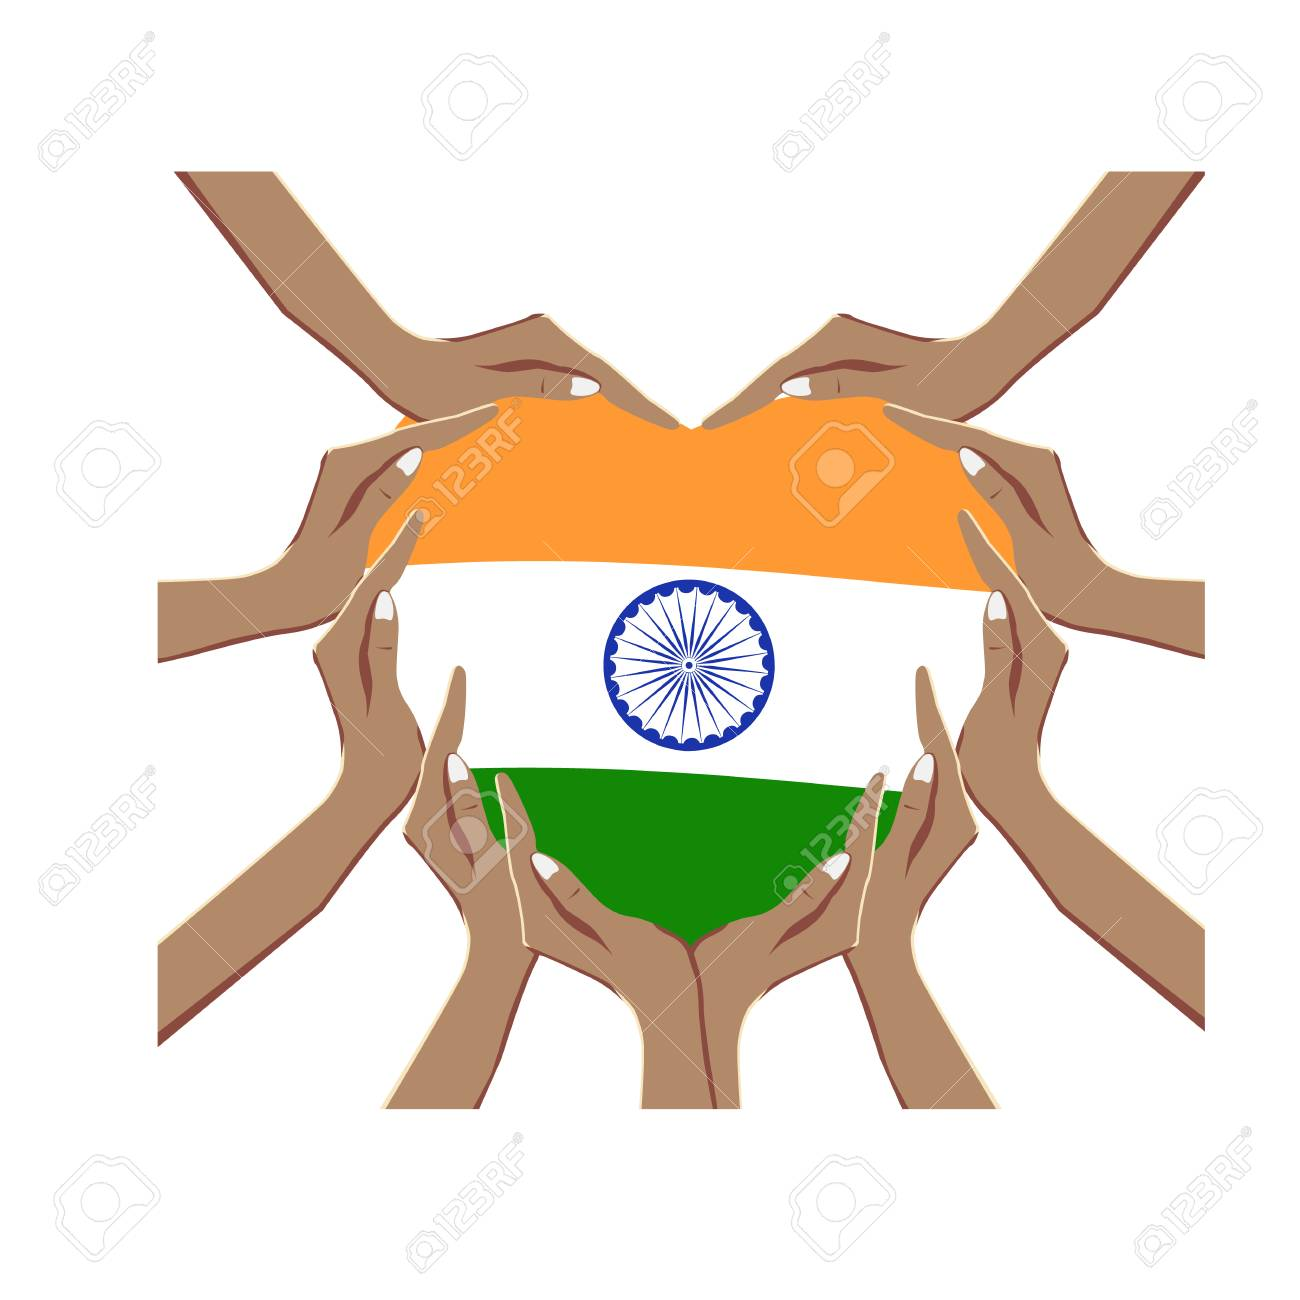 Independence Day of India, vector illustration with hands in the shape of the heart, inside the national flag - 103827994